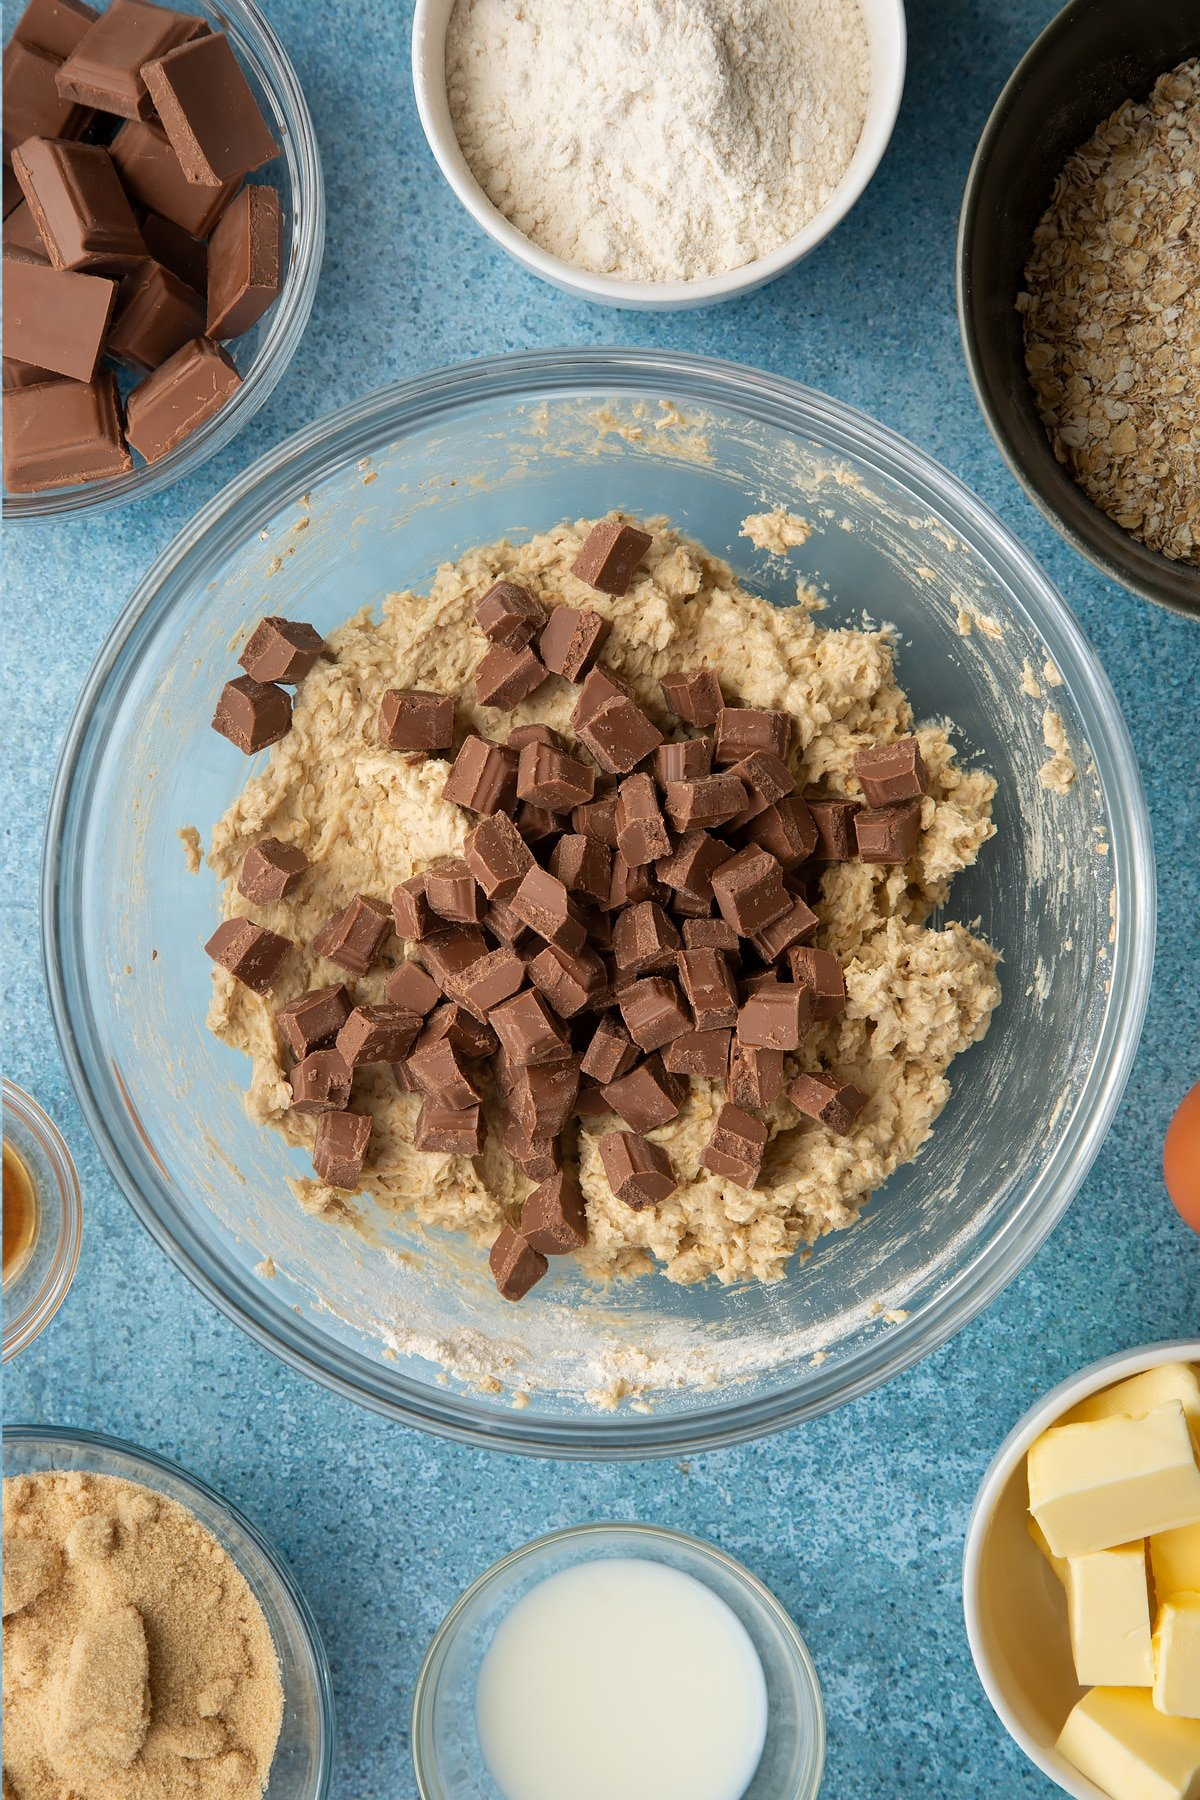 Oatmeal cookie dough in a glass mixing bowl with chocolate chips on top. Ingredients to make cookie monster cookies surround the bowl.